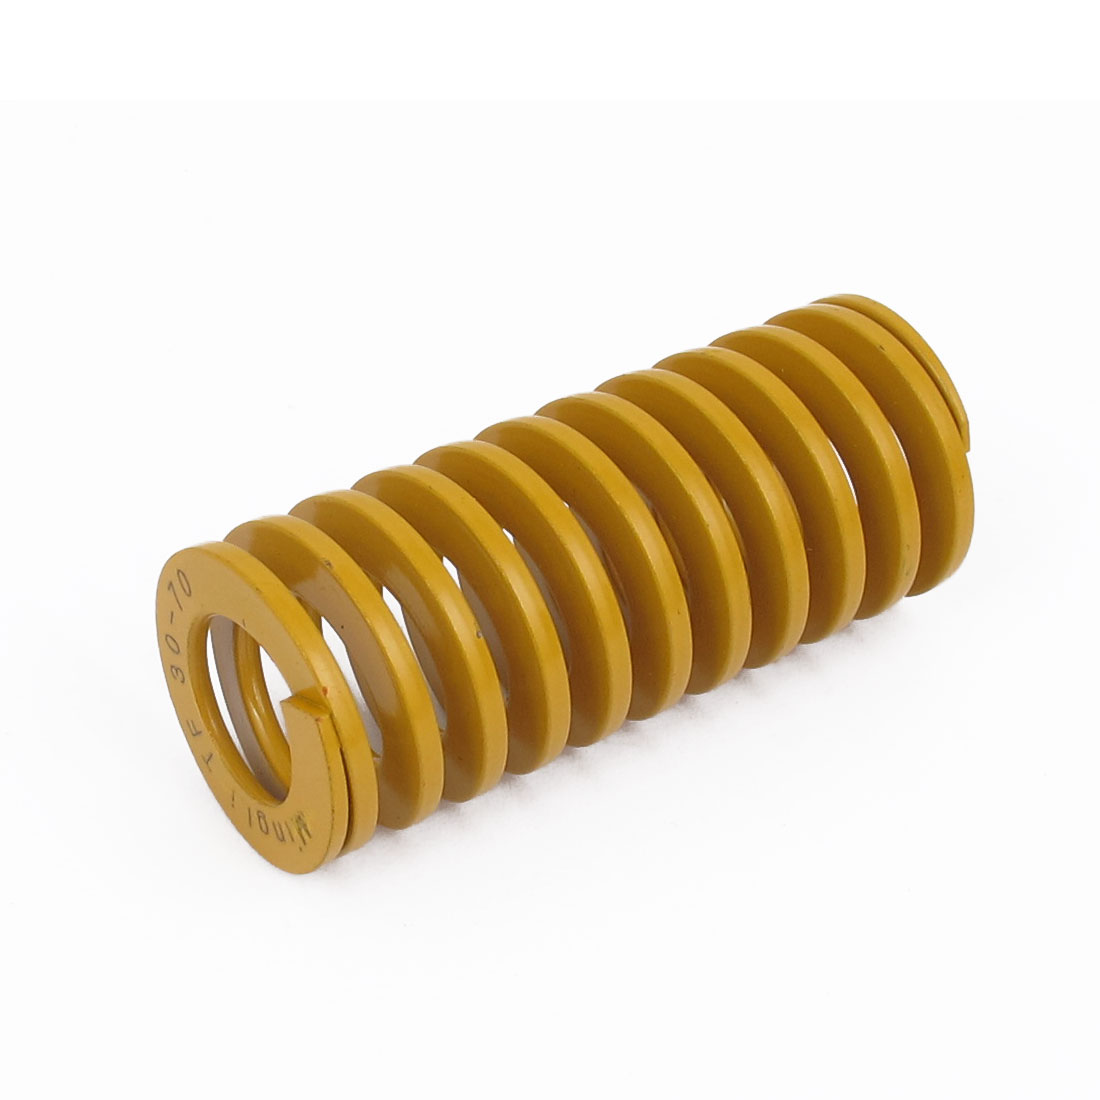 30mm OD 70mm Long Lightest Load Spiral Stamping Compression Die Spring Yellow